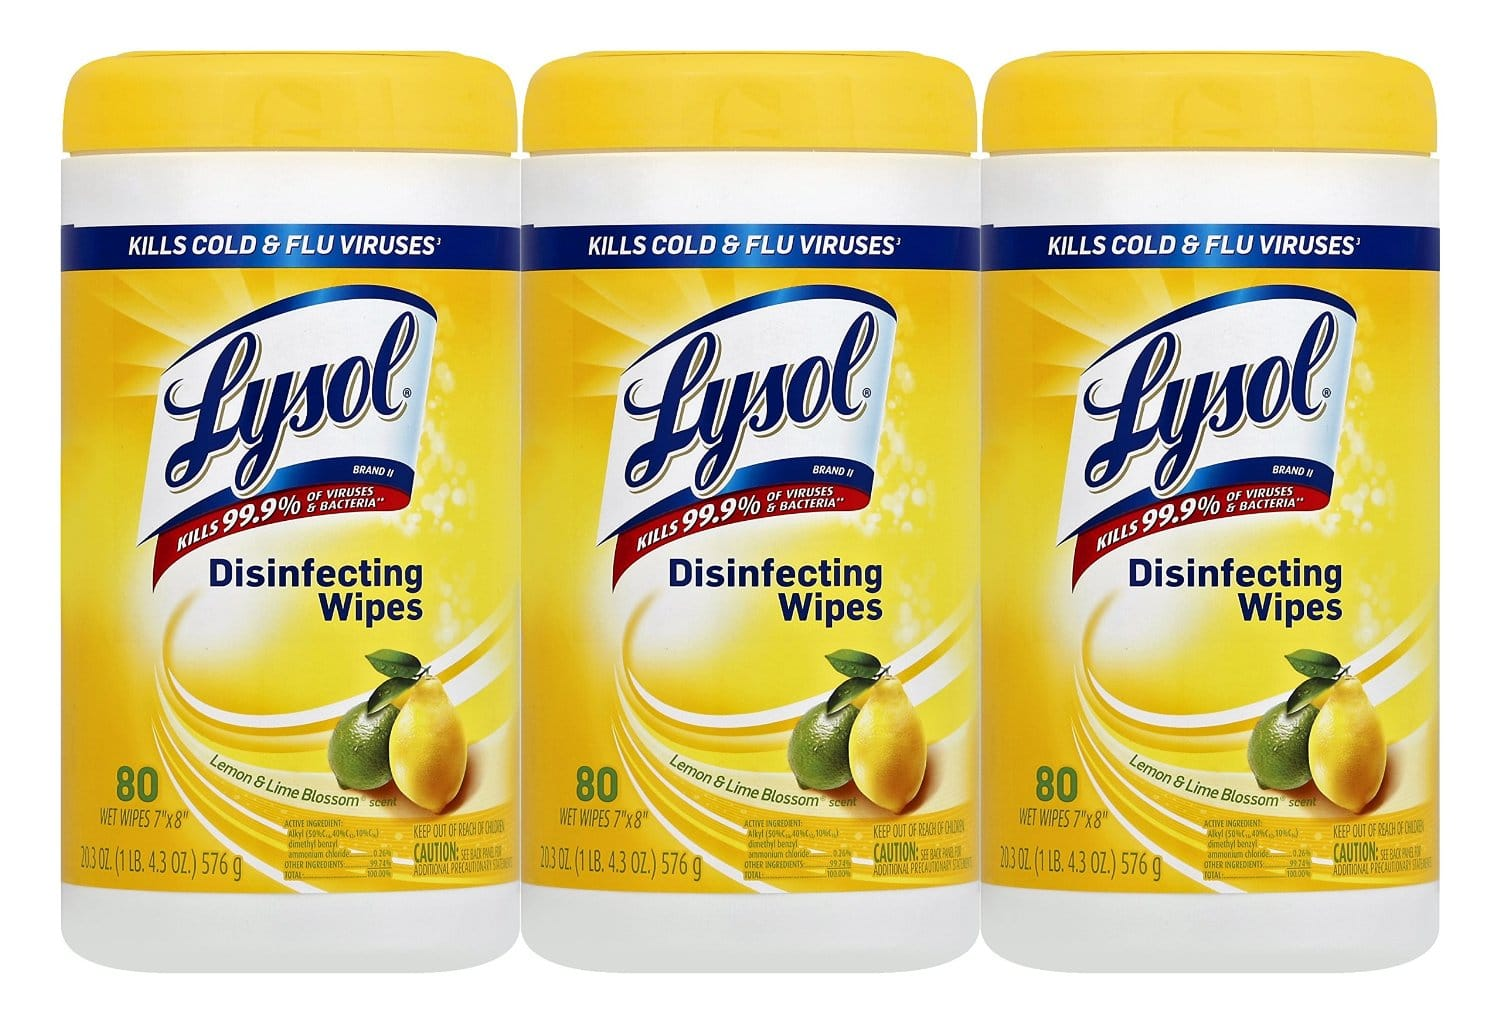 3-Pack of 80-Count Lysol Disinfecting Wipes (Lemon and Lime Blossom)  $6.50 + Free Shipping